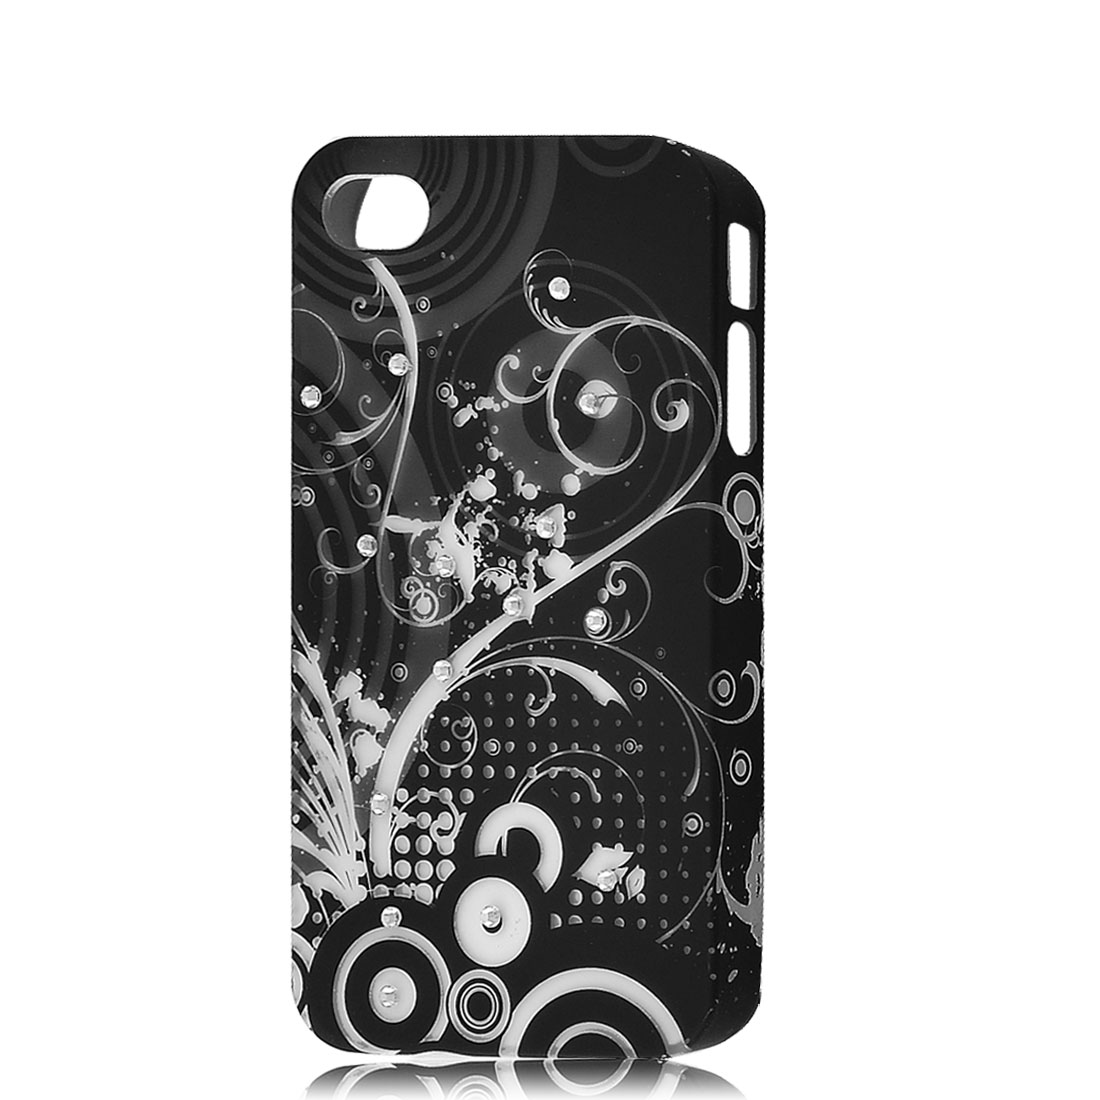 Black Circle Pattern Faux Rhinestones Decor Back Case for iPhone 4 4G 4GS 4S